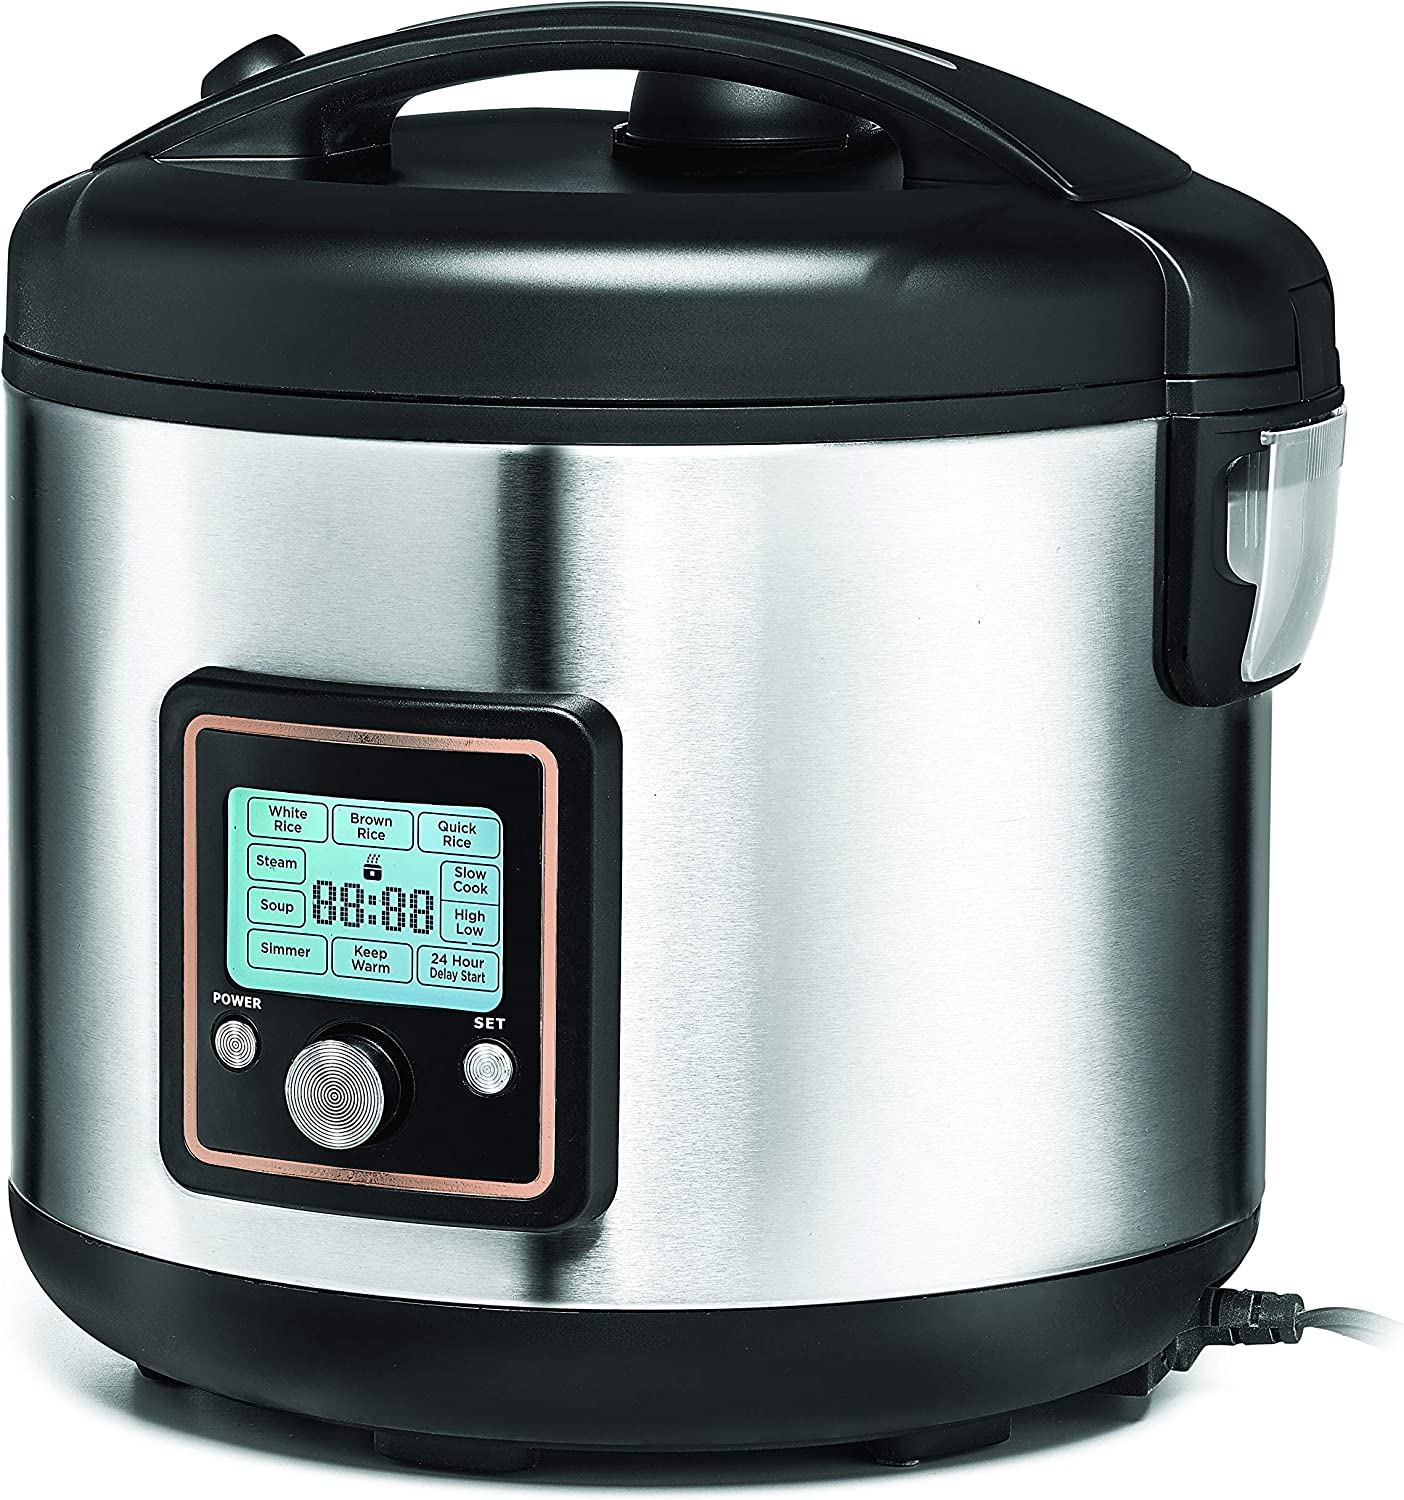 CRUX 20-Cup Fuzzy Logic Digital Rice Cooker with 24-Hour Delay Timer for Slow Cooking & Steaming